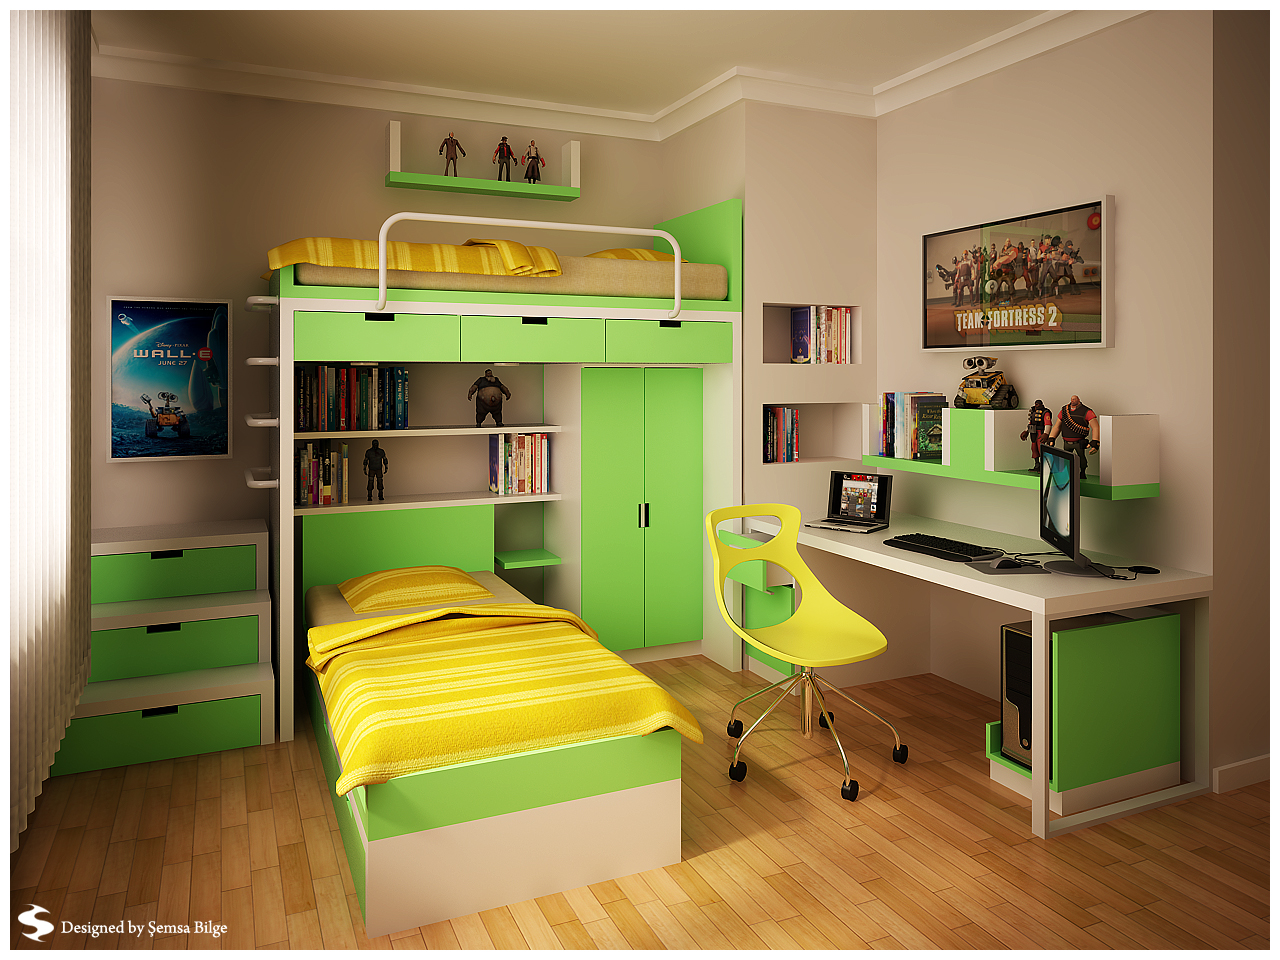 Stunning Teen Bedroom Room Design 1280 x 960 · 955 kB · jpeg